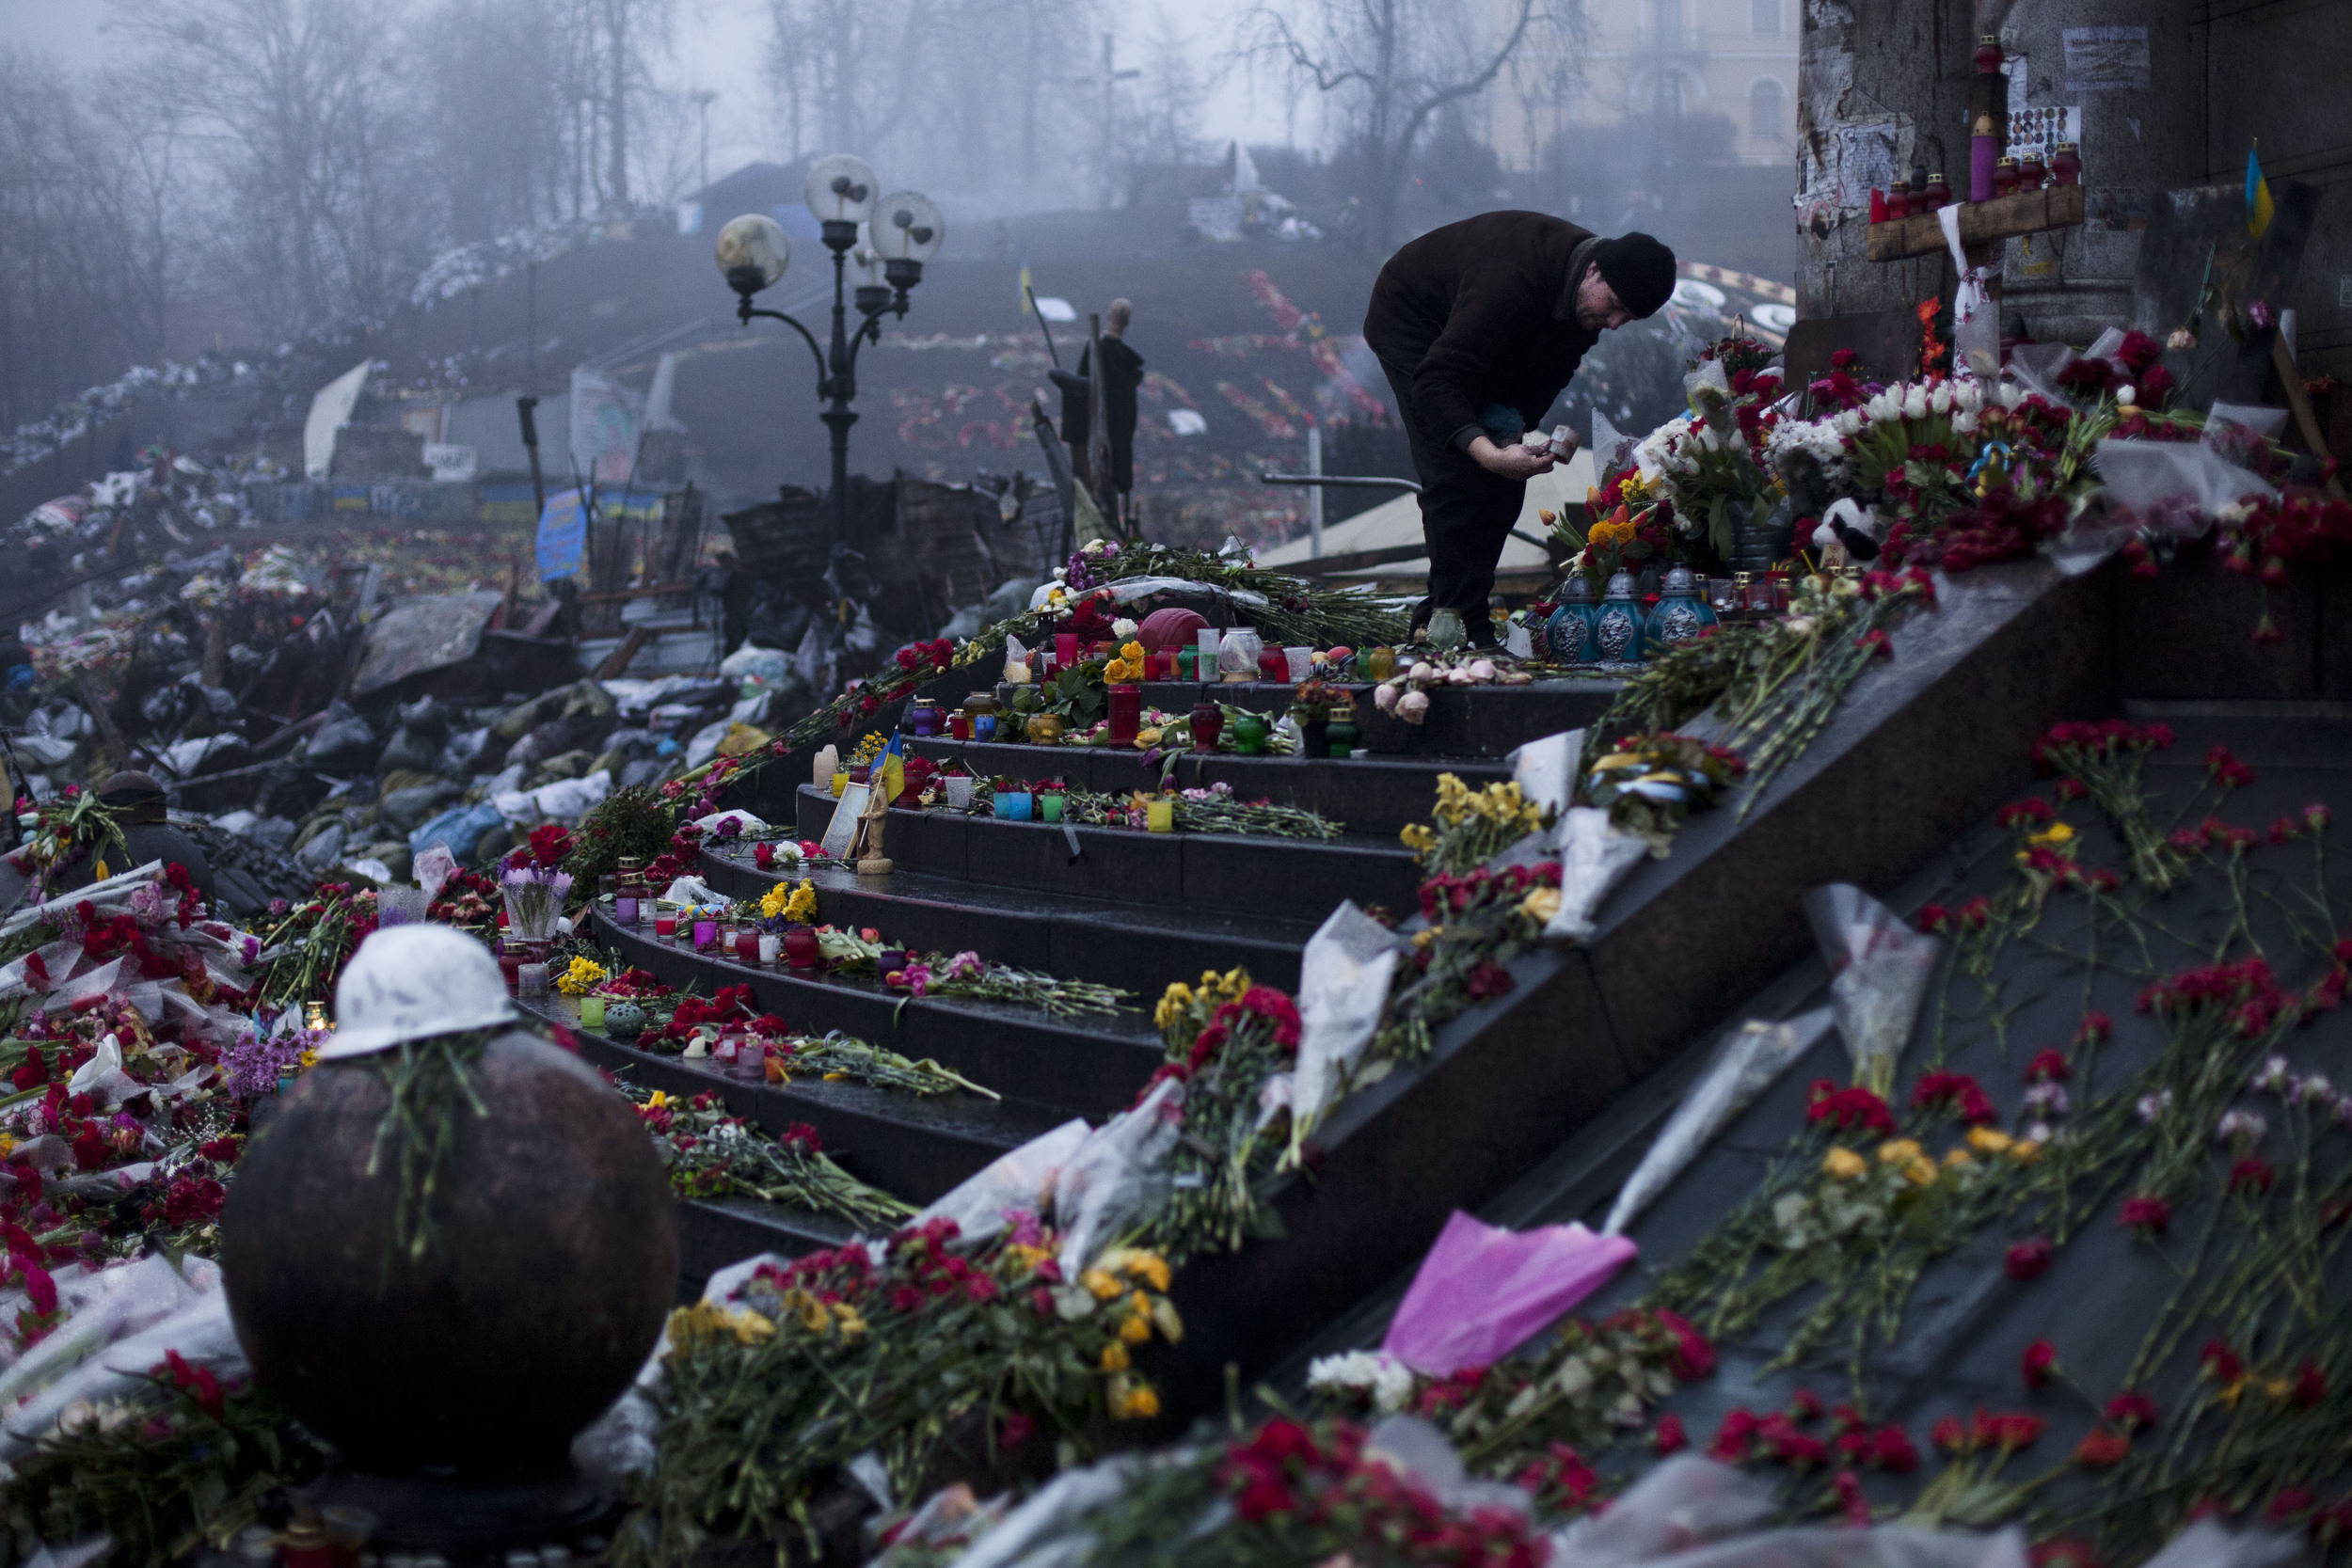 A man arranges candles at a memorial to victims of late February's clashes in Kiev's Independence Square, Ukraine, Wednesday, March 5, 2014. (AP Photo/David Azia)